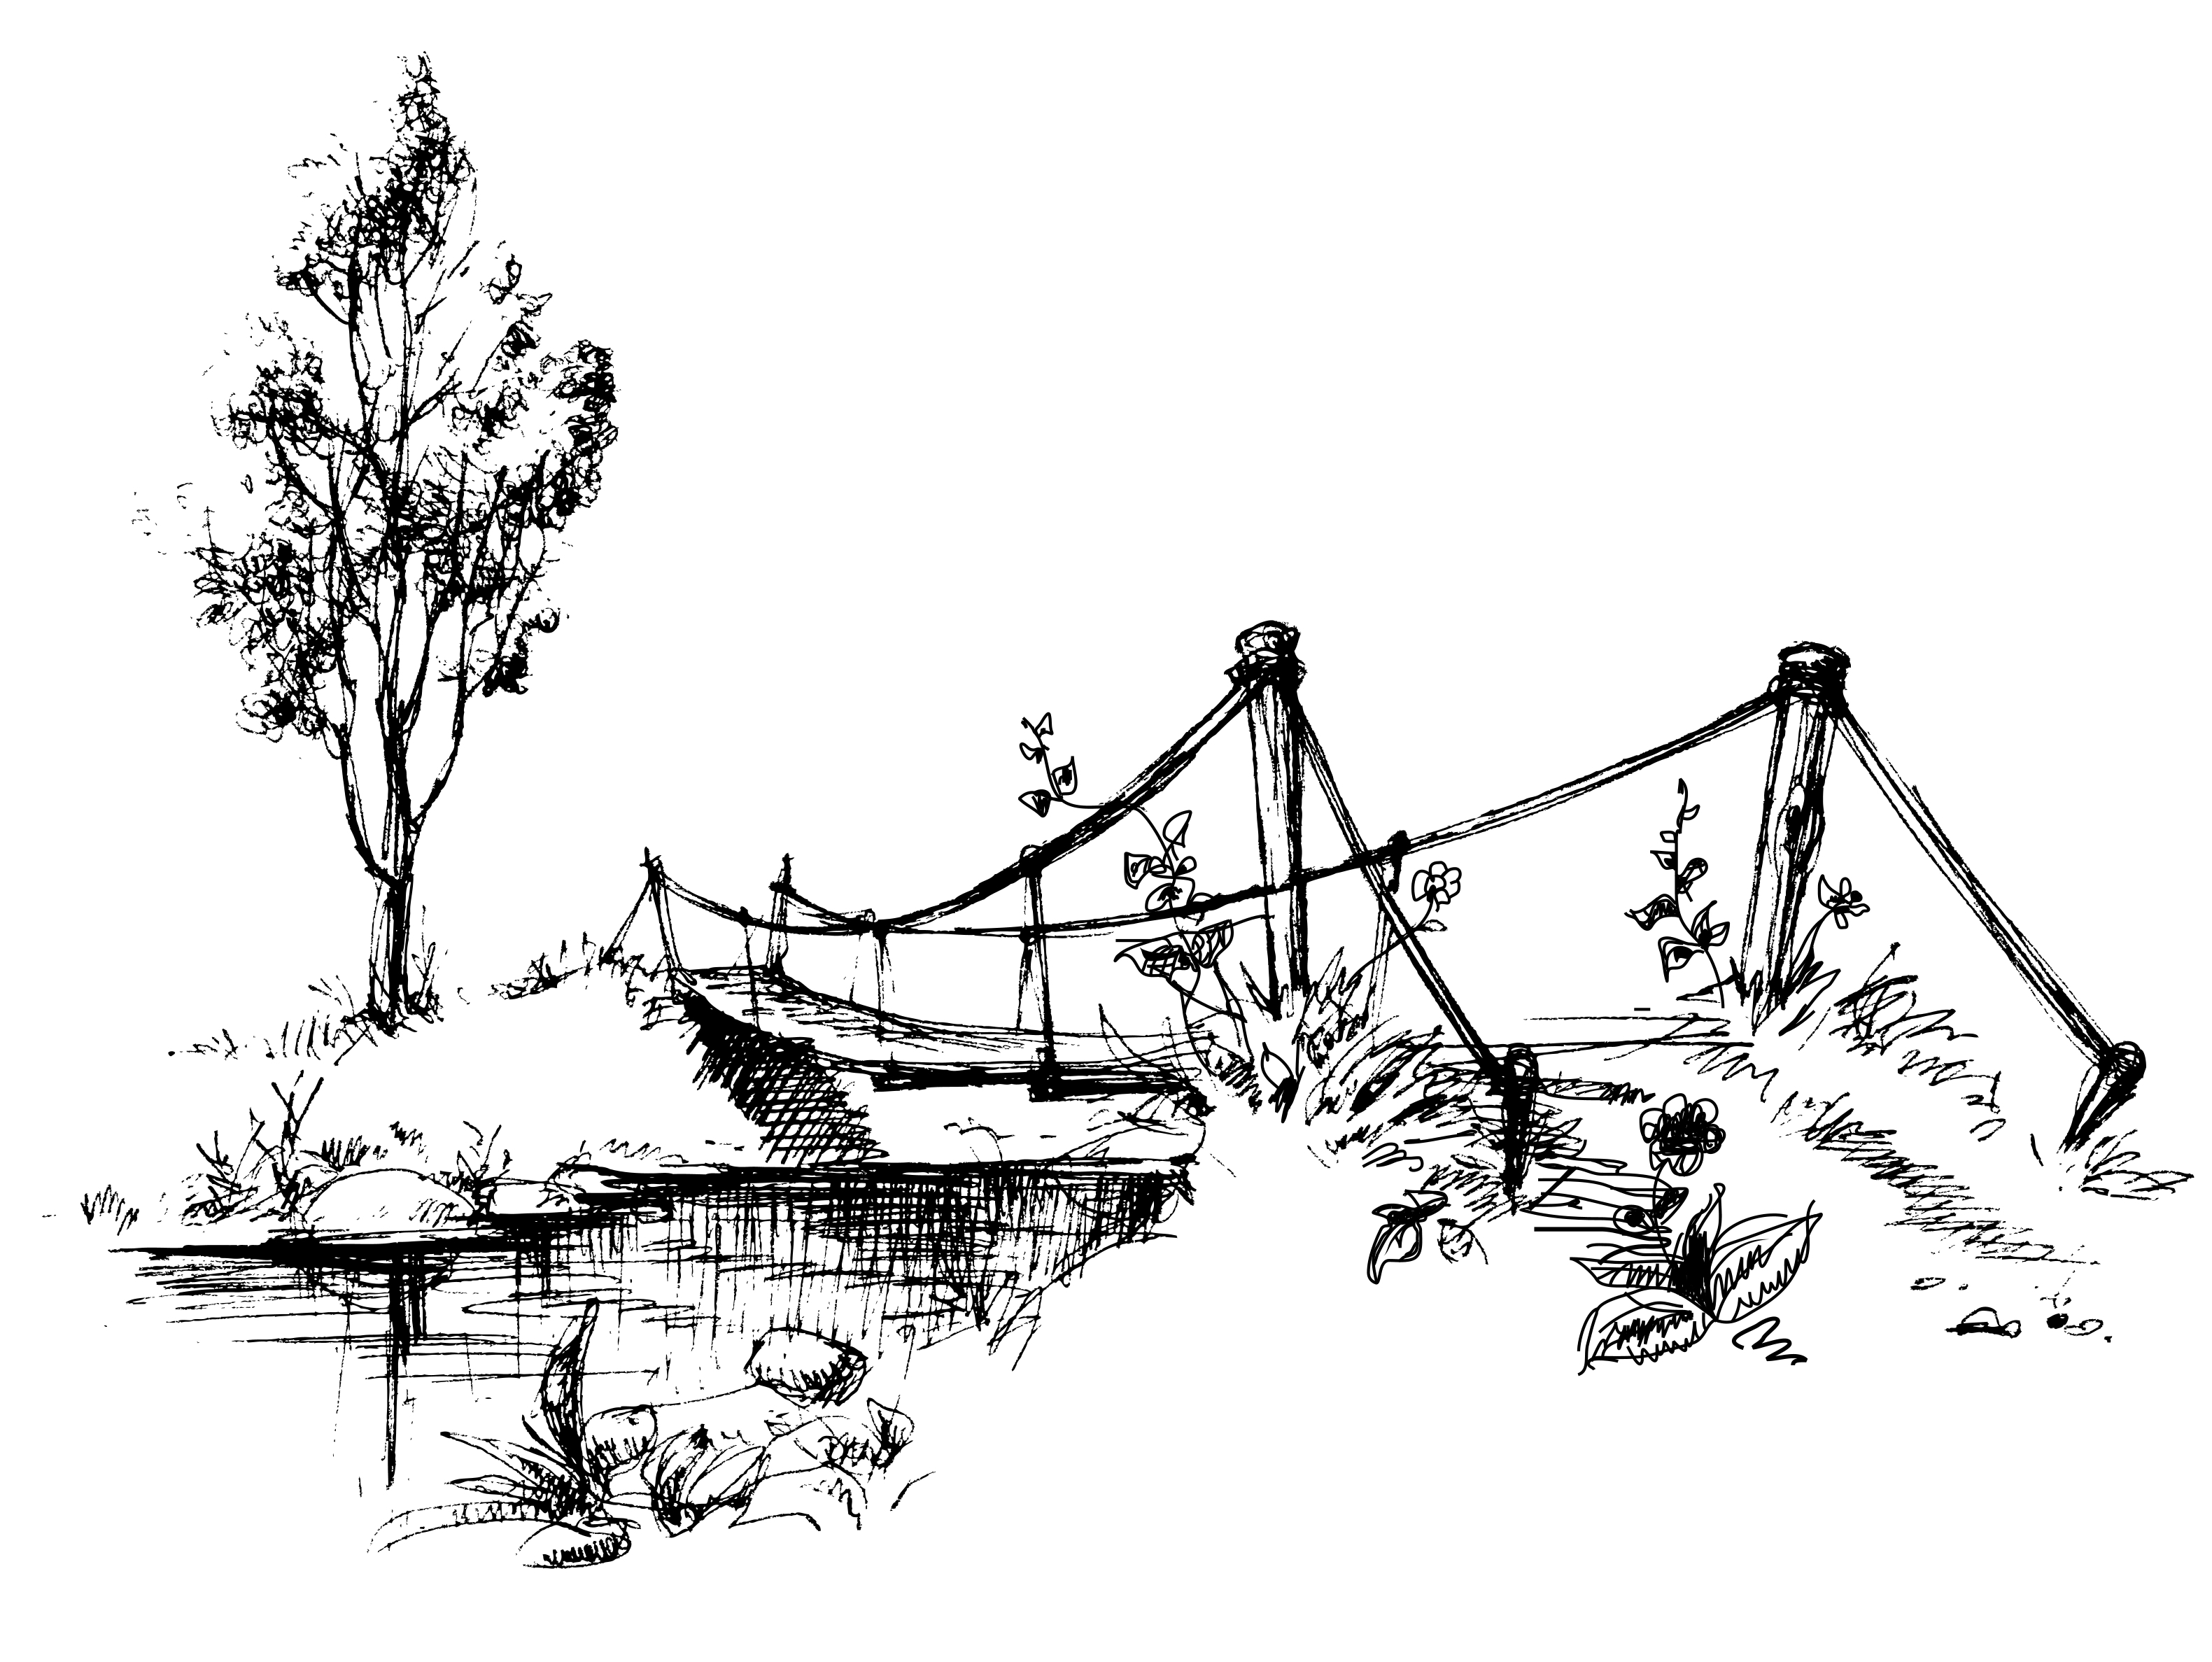 Sketch of an old footbridge over a stream